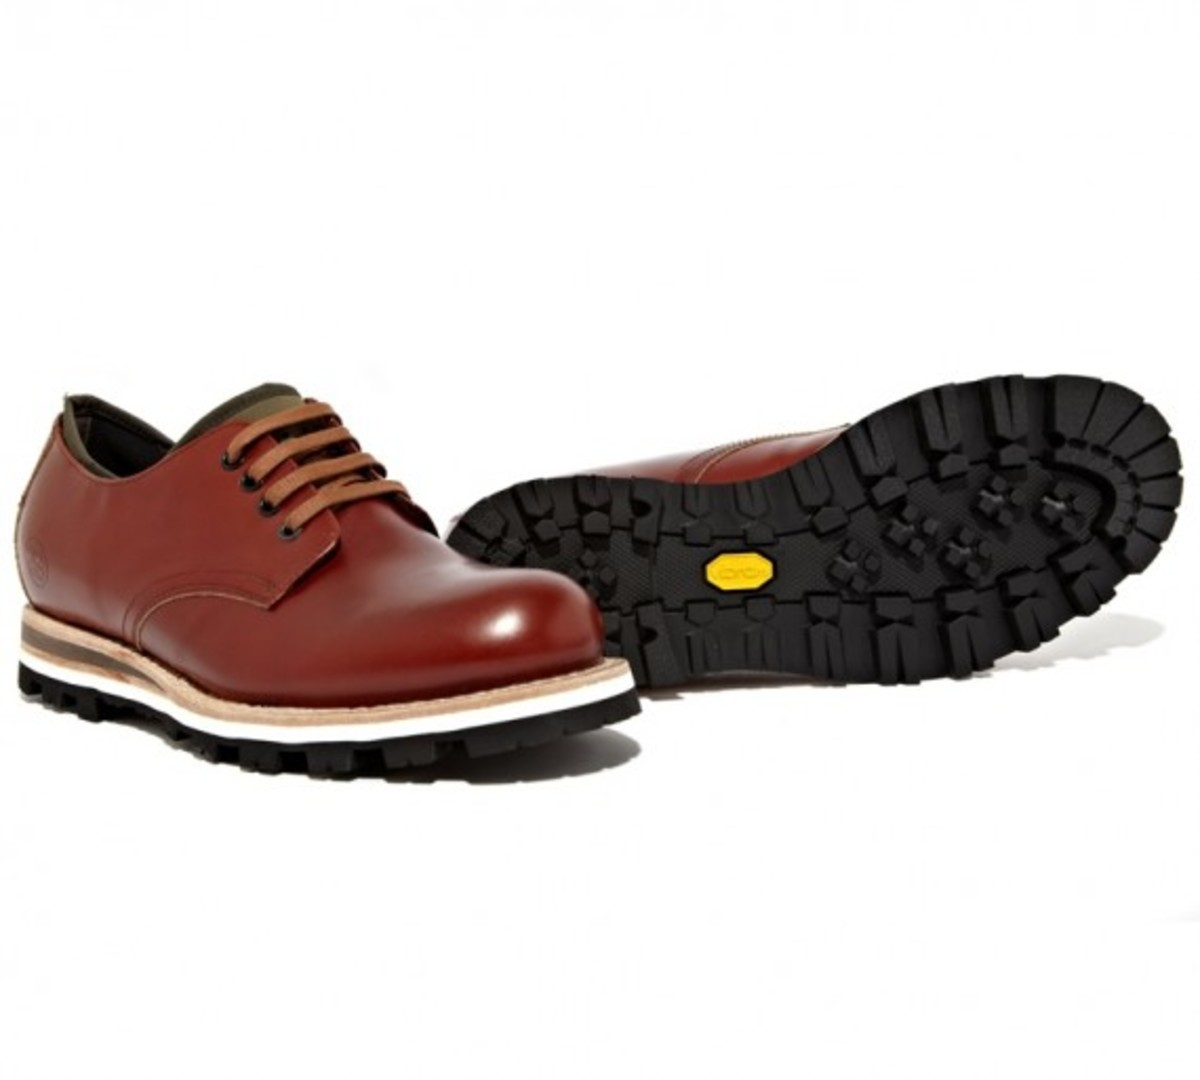 stussy-deluxe-be-positive-leather-shoes-02